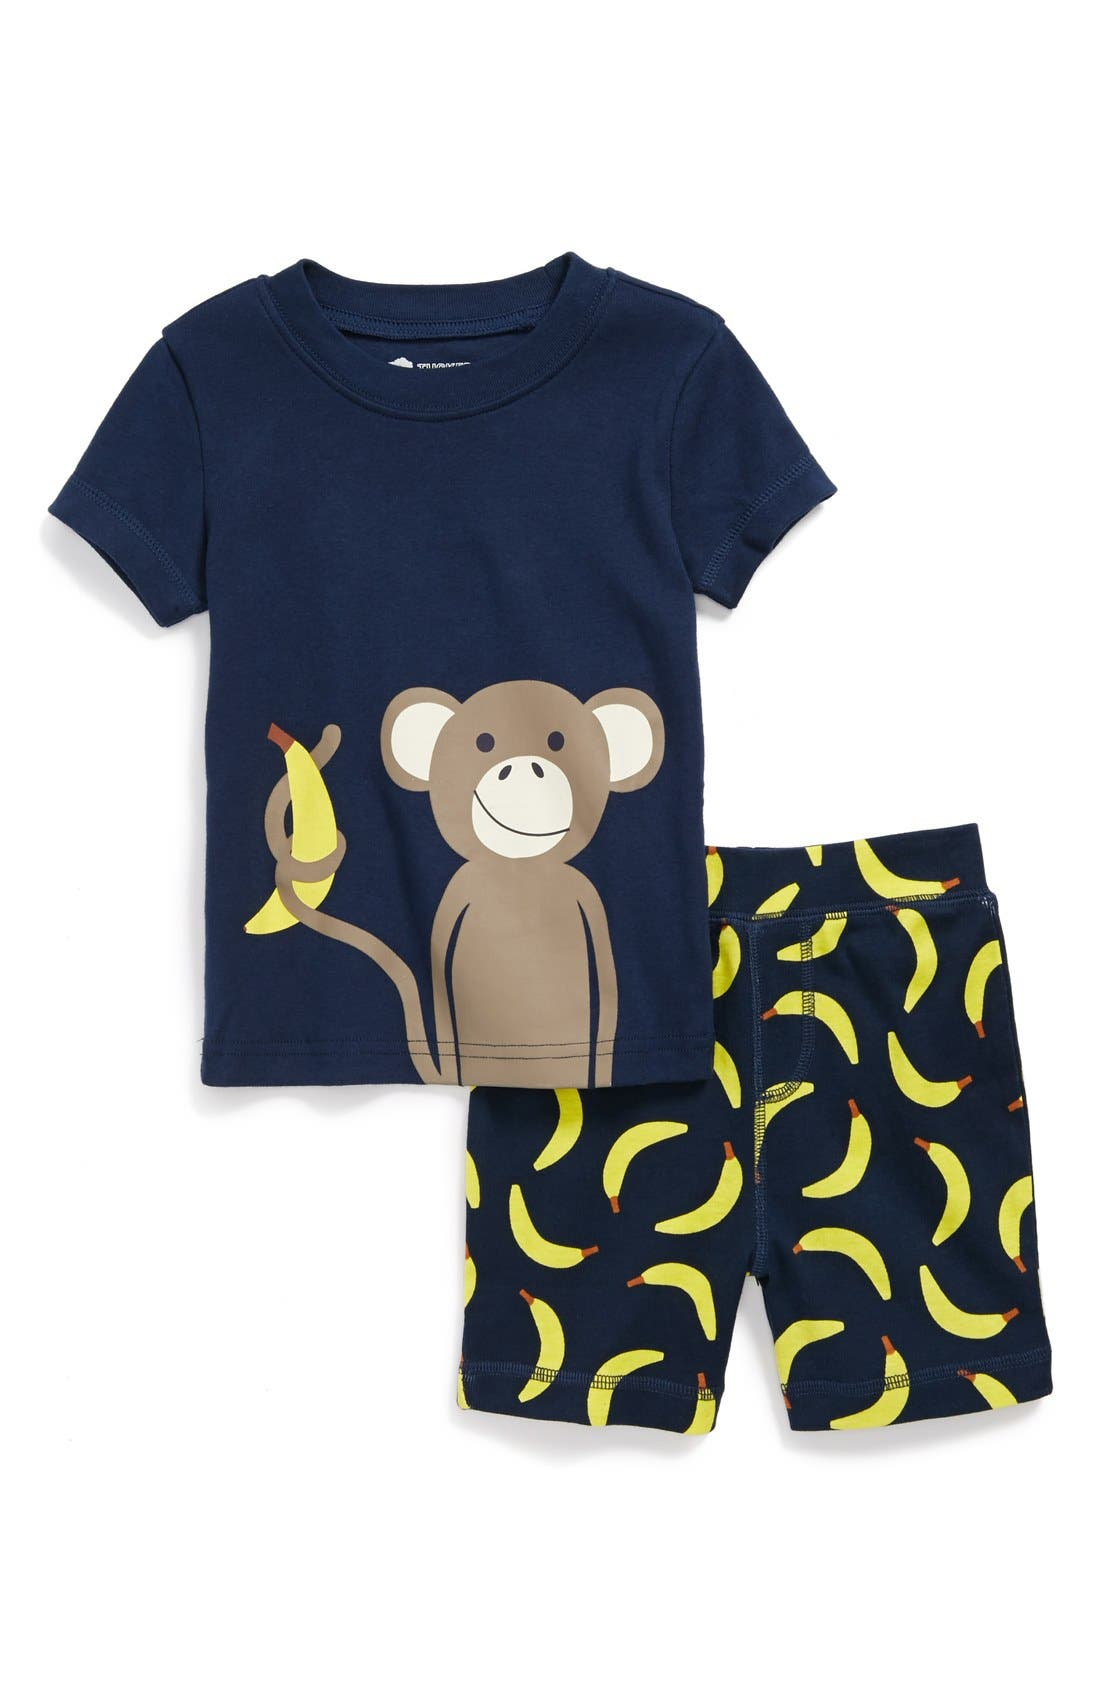 Alternate Image 1 Selected - Tucker + Tate Two-Piece Pajamas (Toddler Boys, Little Boys & Big Boys)